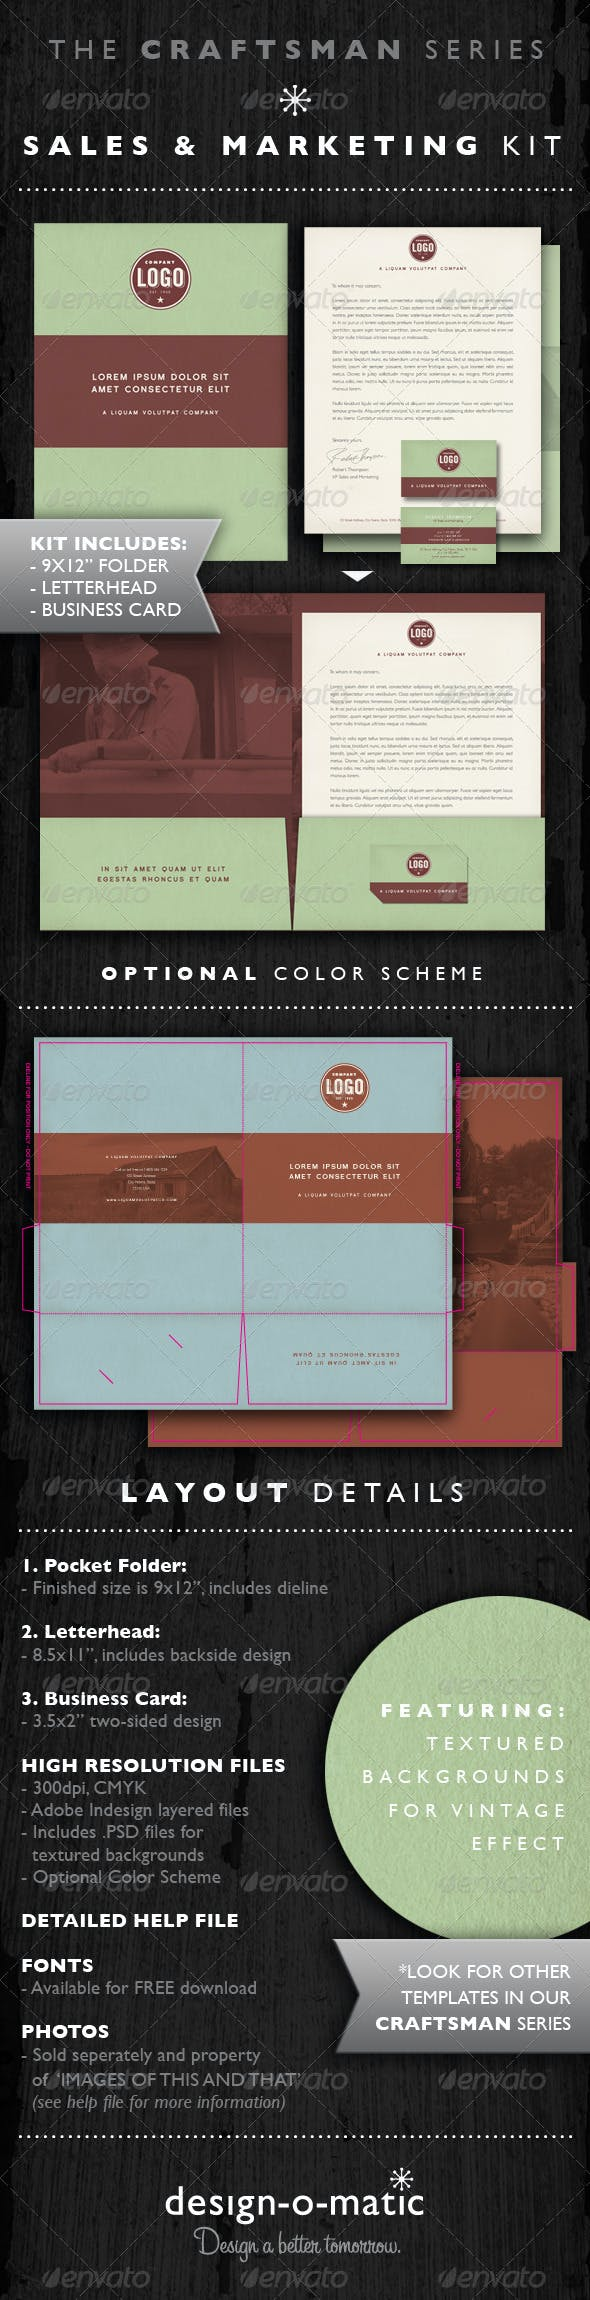 Sales Marketing Kit Folder Template Indd By Design O Matic